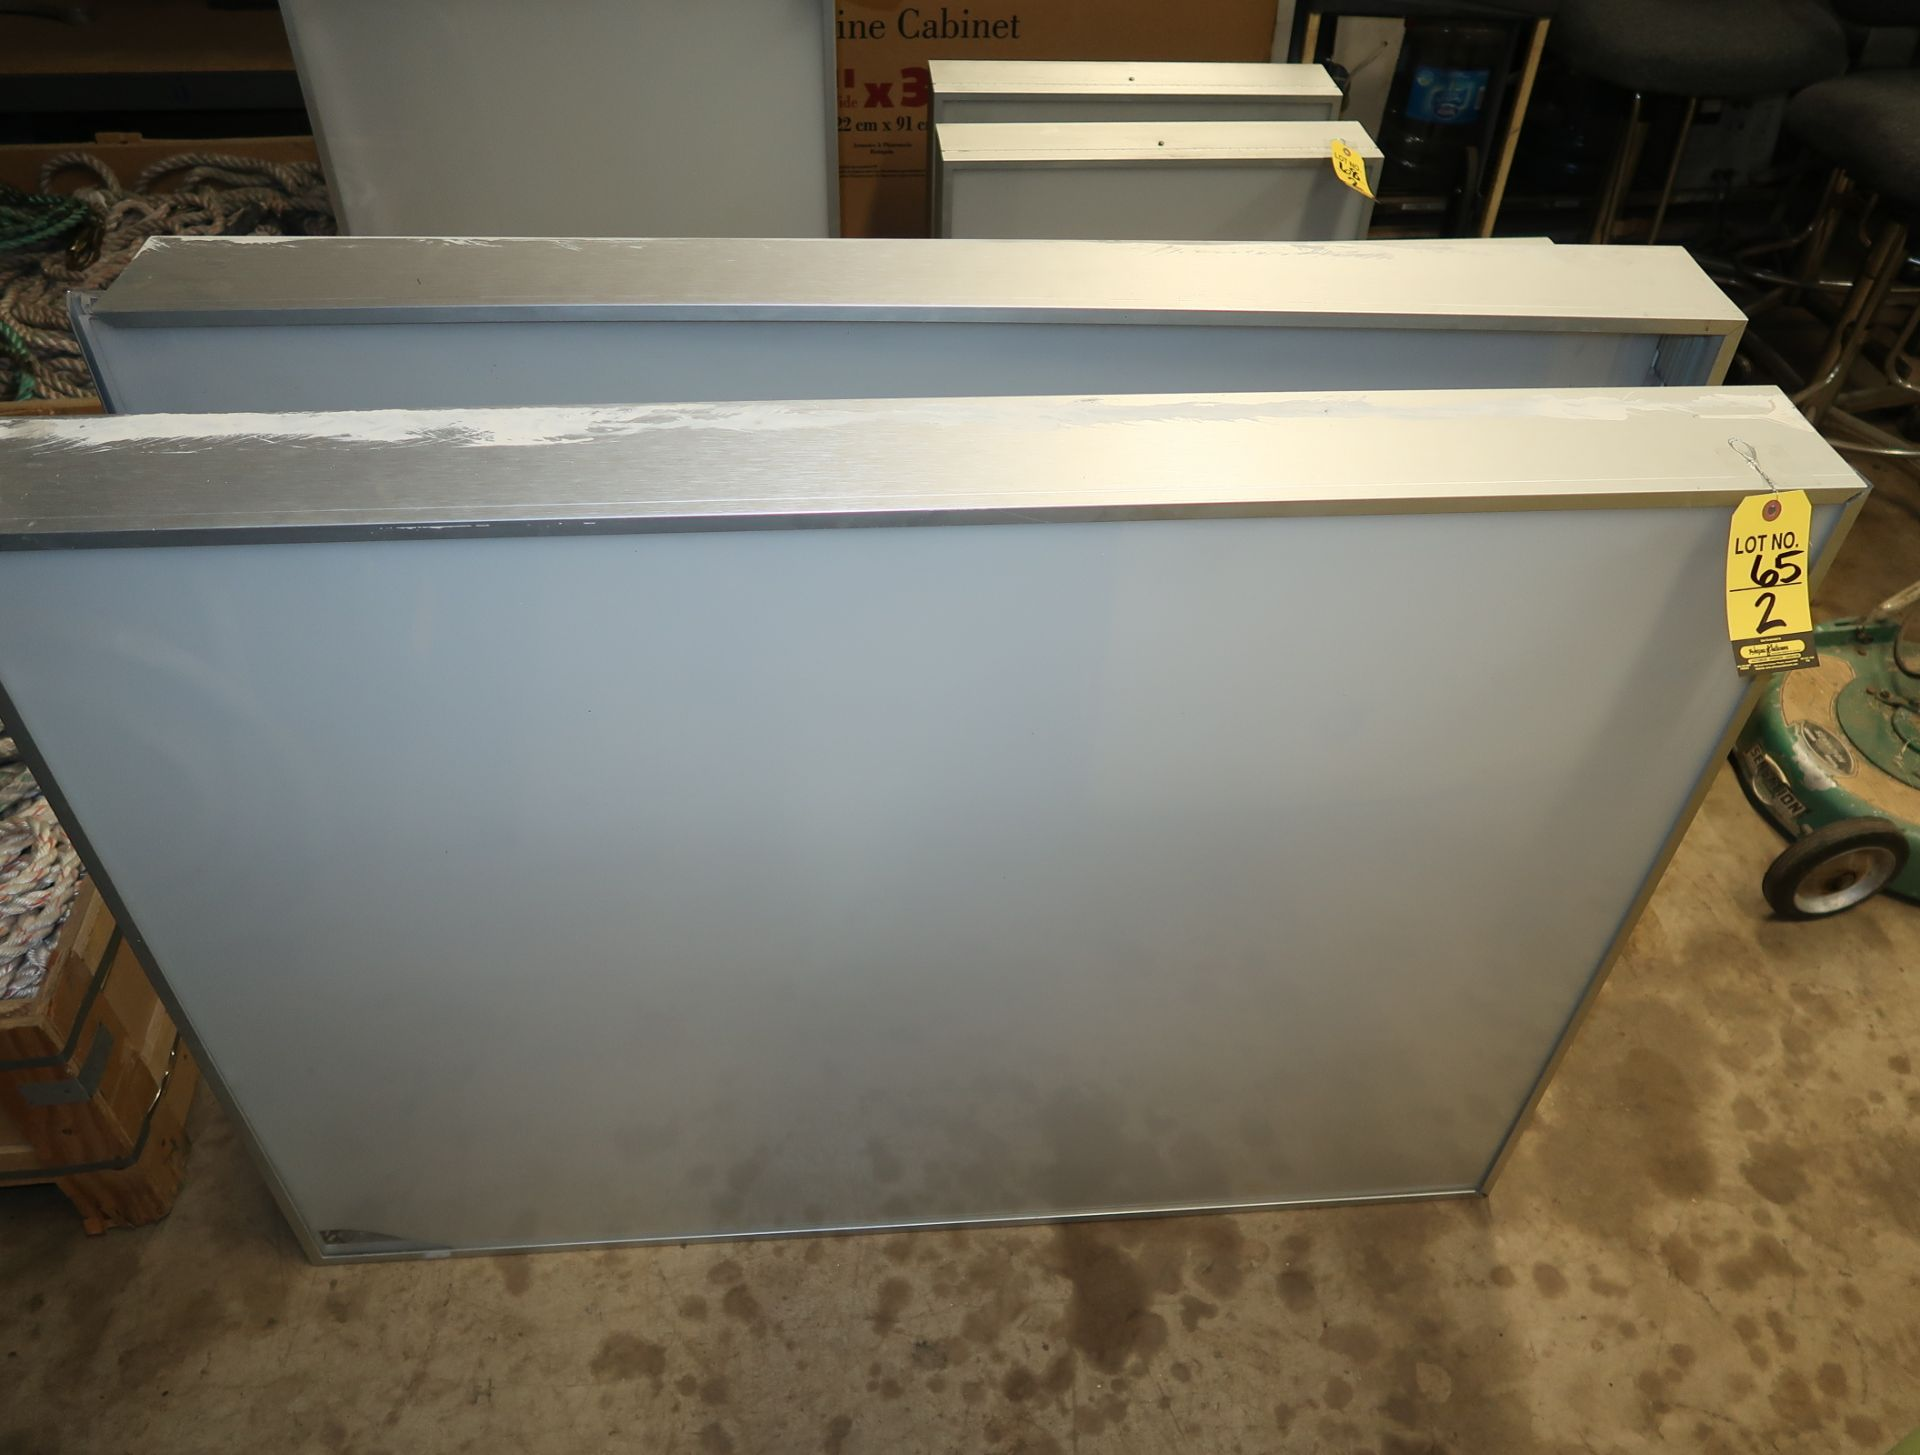 Lot 65 - 4'X3' LIGHT BOXES